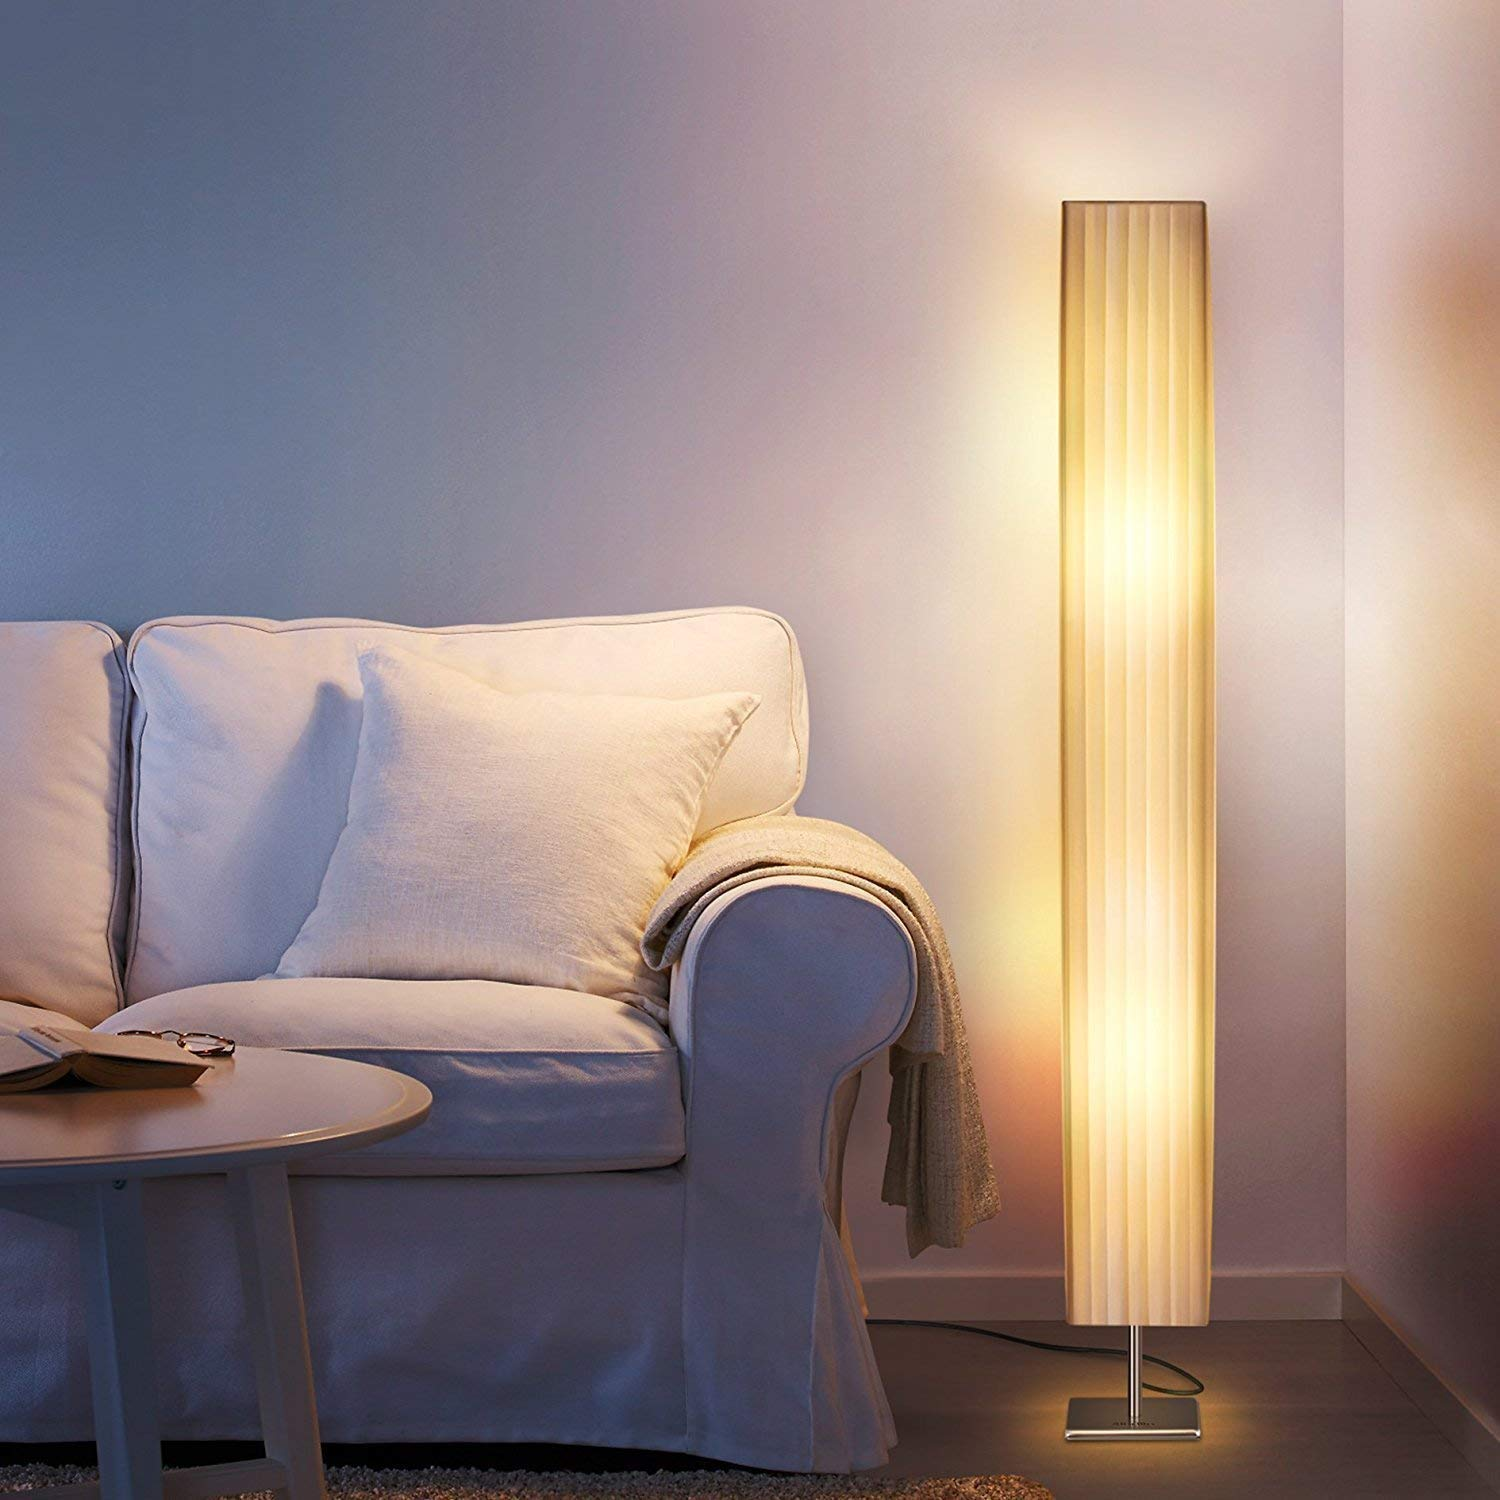 Cheap Tall Floor Lamps, find Tall Floor Lamps deals on line at